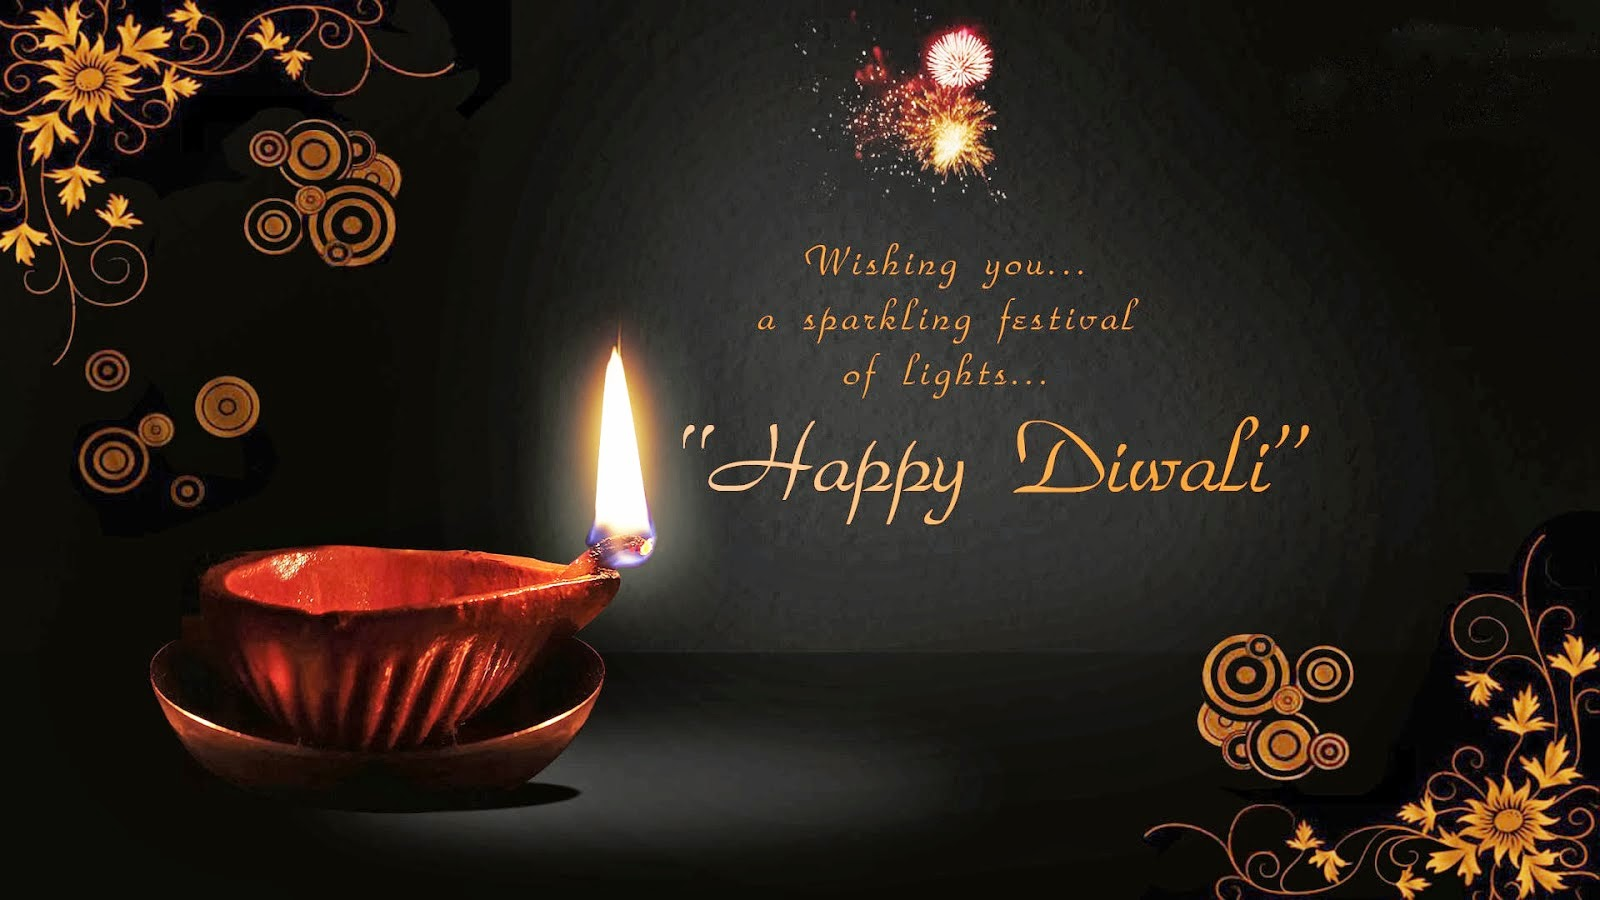 shubh deepavali happy diwali images wallpapers photos whatsapp fb dp crackers firework video 2015